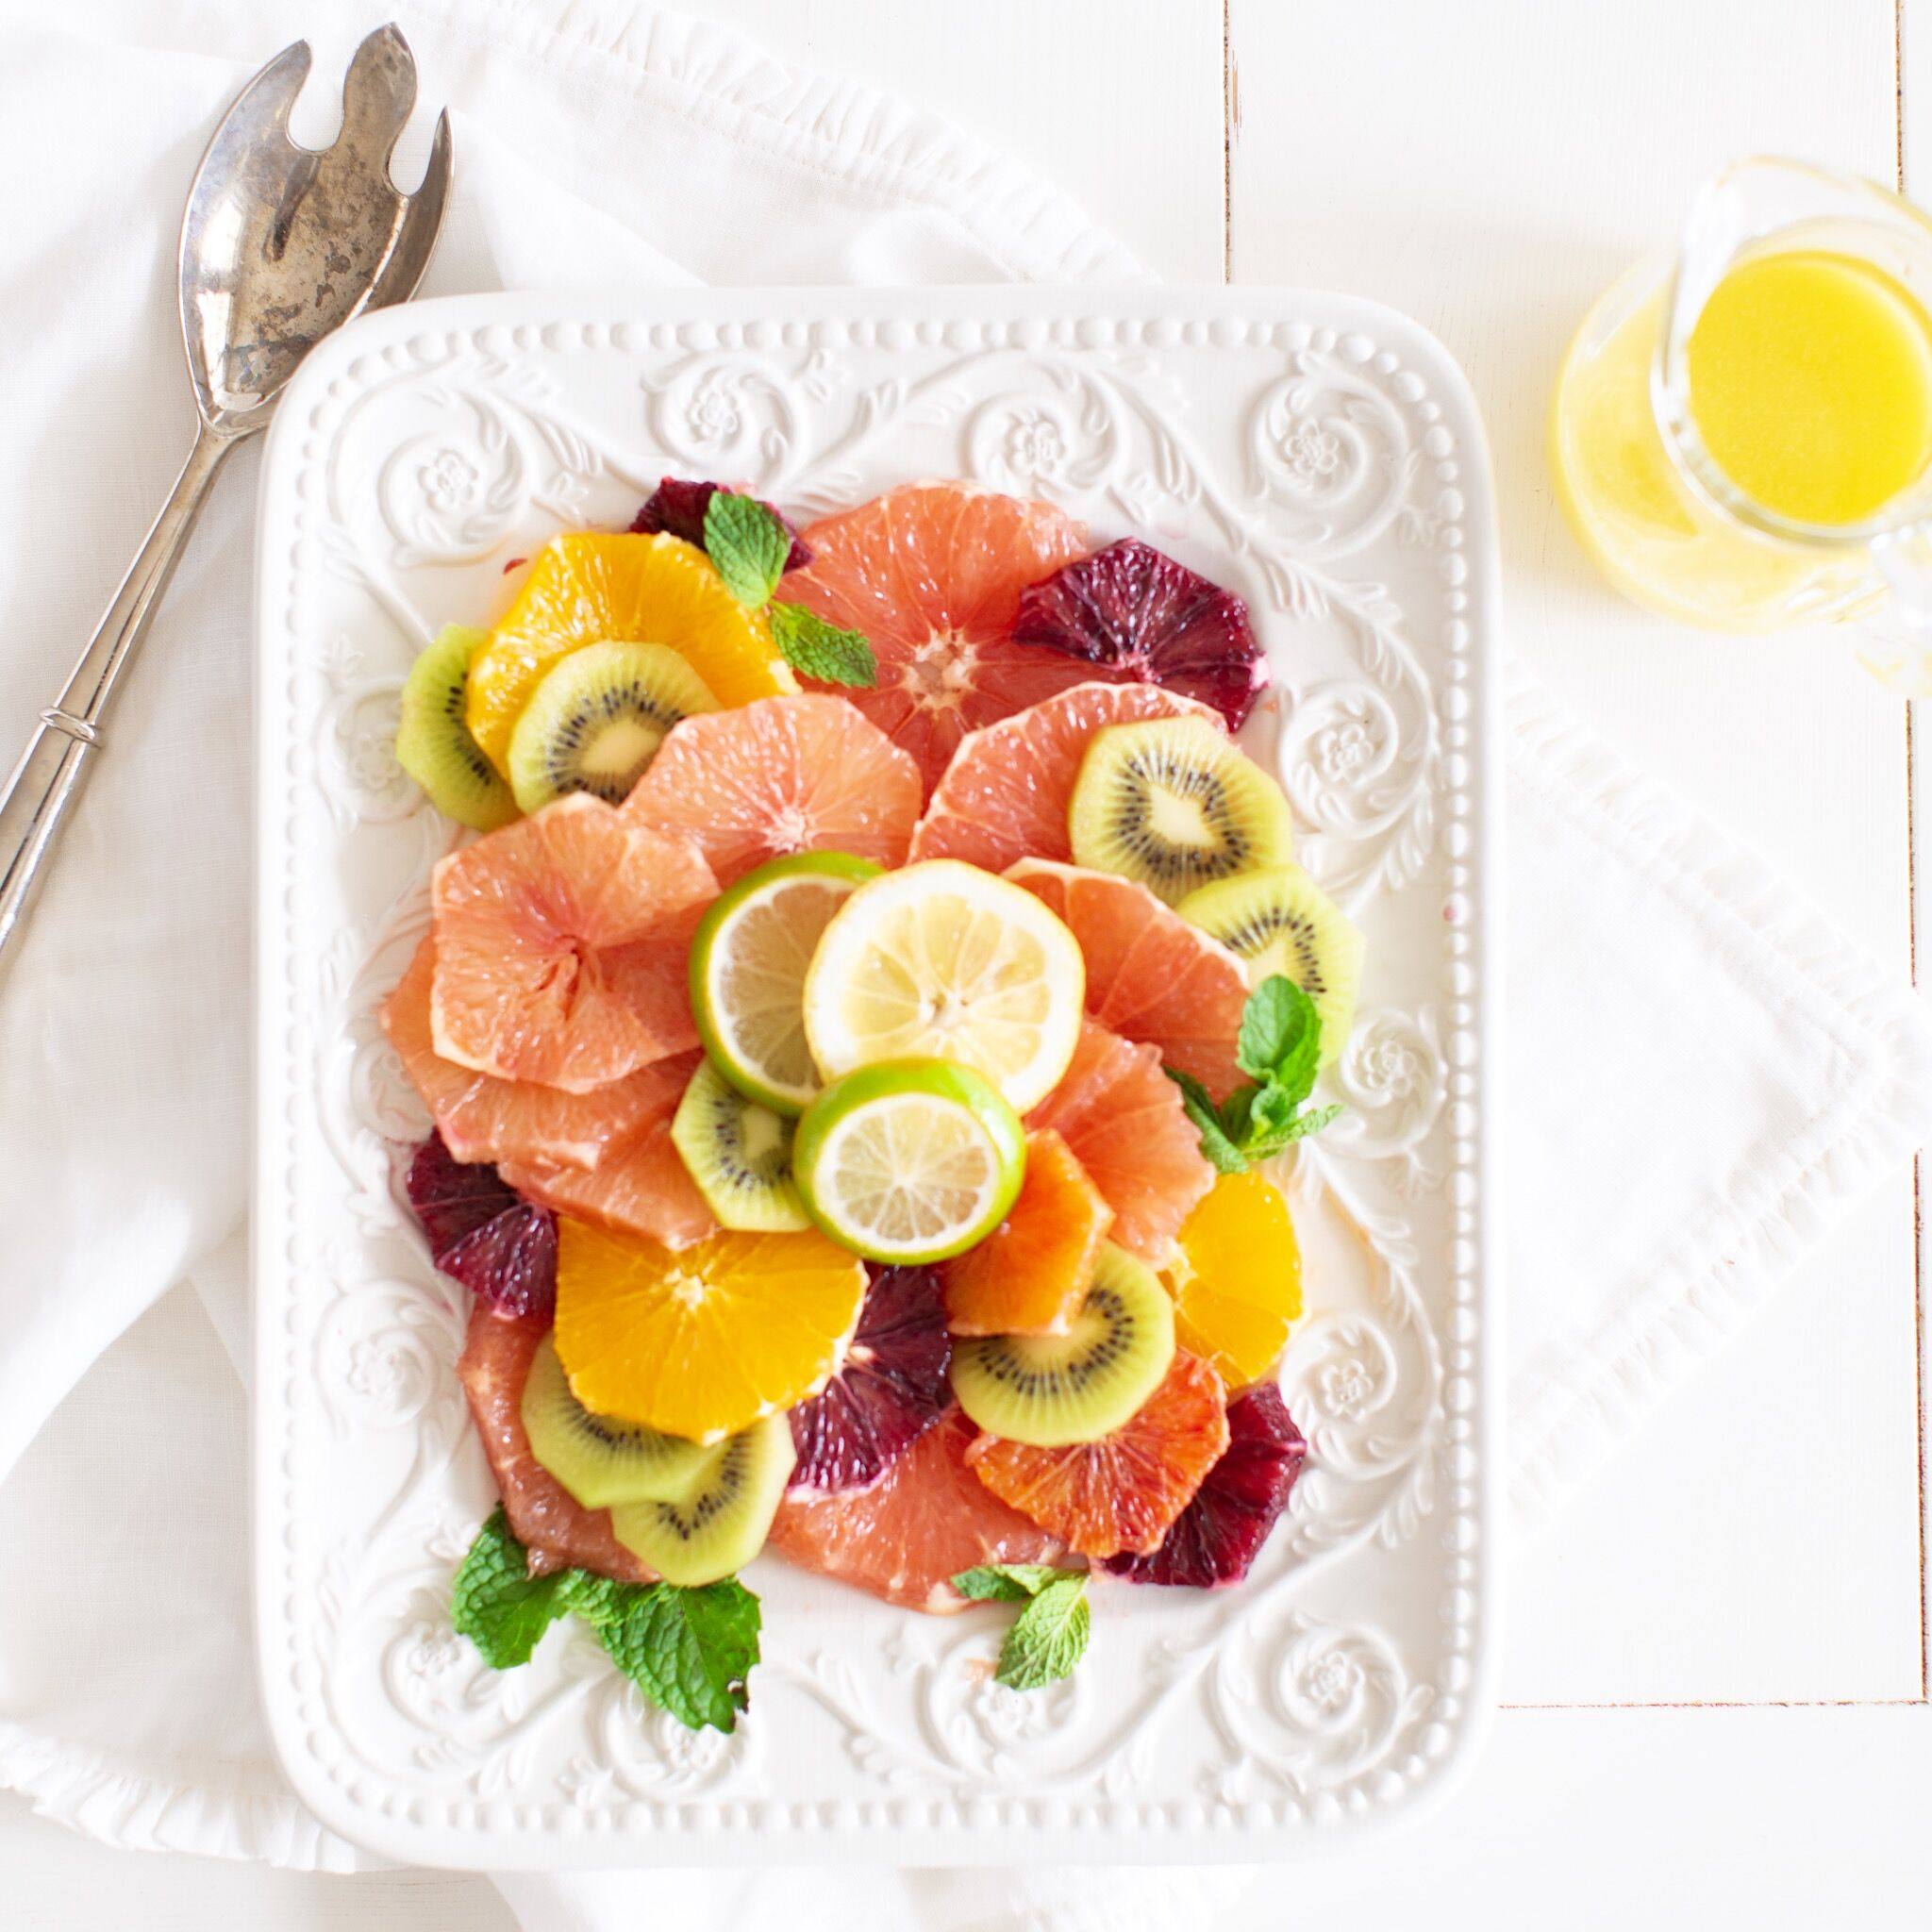 Mixed Citrus Kiwi Salad with Honey Lime Vinaigrette